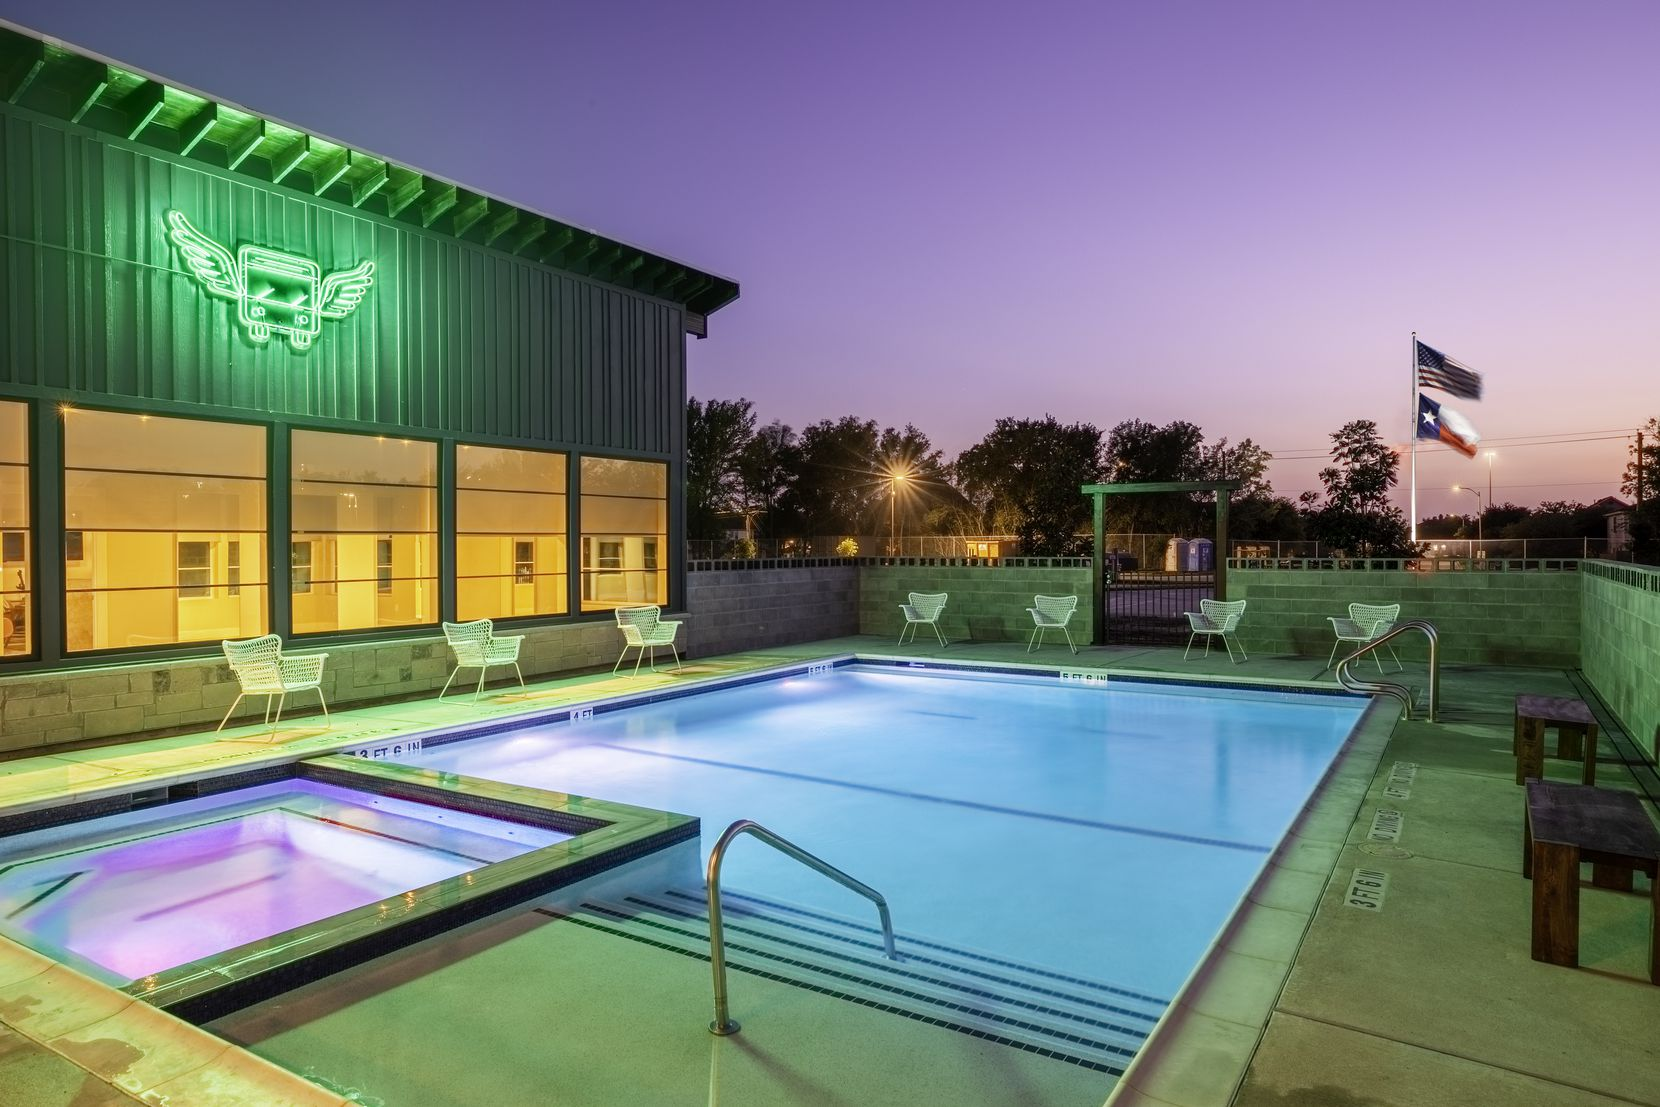 Eric & Jay's RV Resort in Houston features a pool with a Jacuzzi and a modern farmhouse-style clubhouse with a game room, coffee bar, fitness center and other amenities.